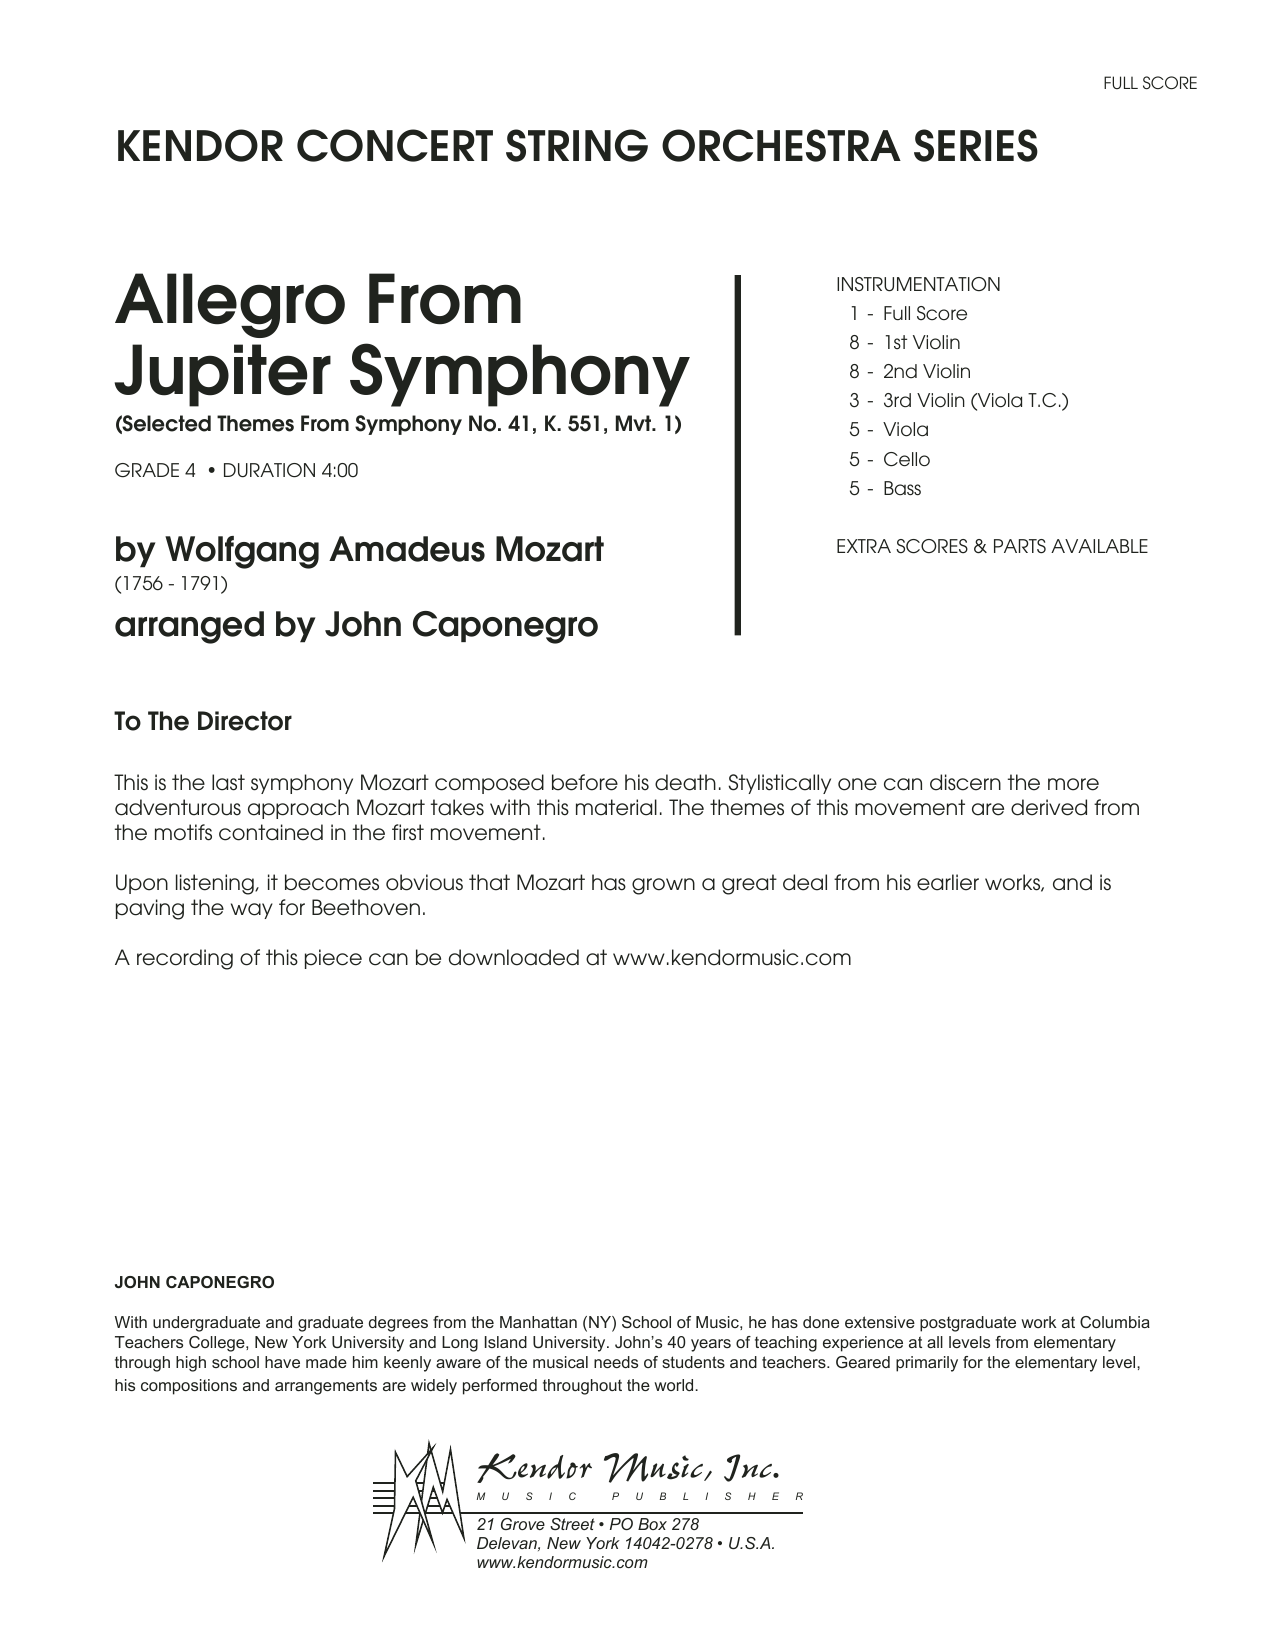 John Caponegro Allegro From Jupiter Symphony - Full Score sheet music preview music notes and score for Orchestra including 11 page(s)